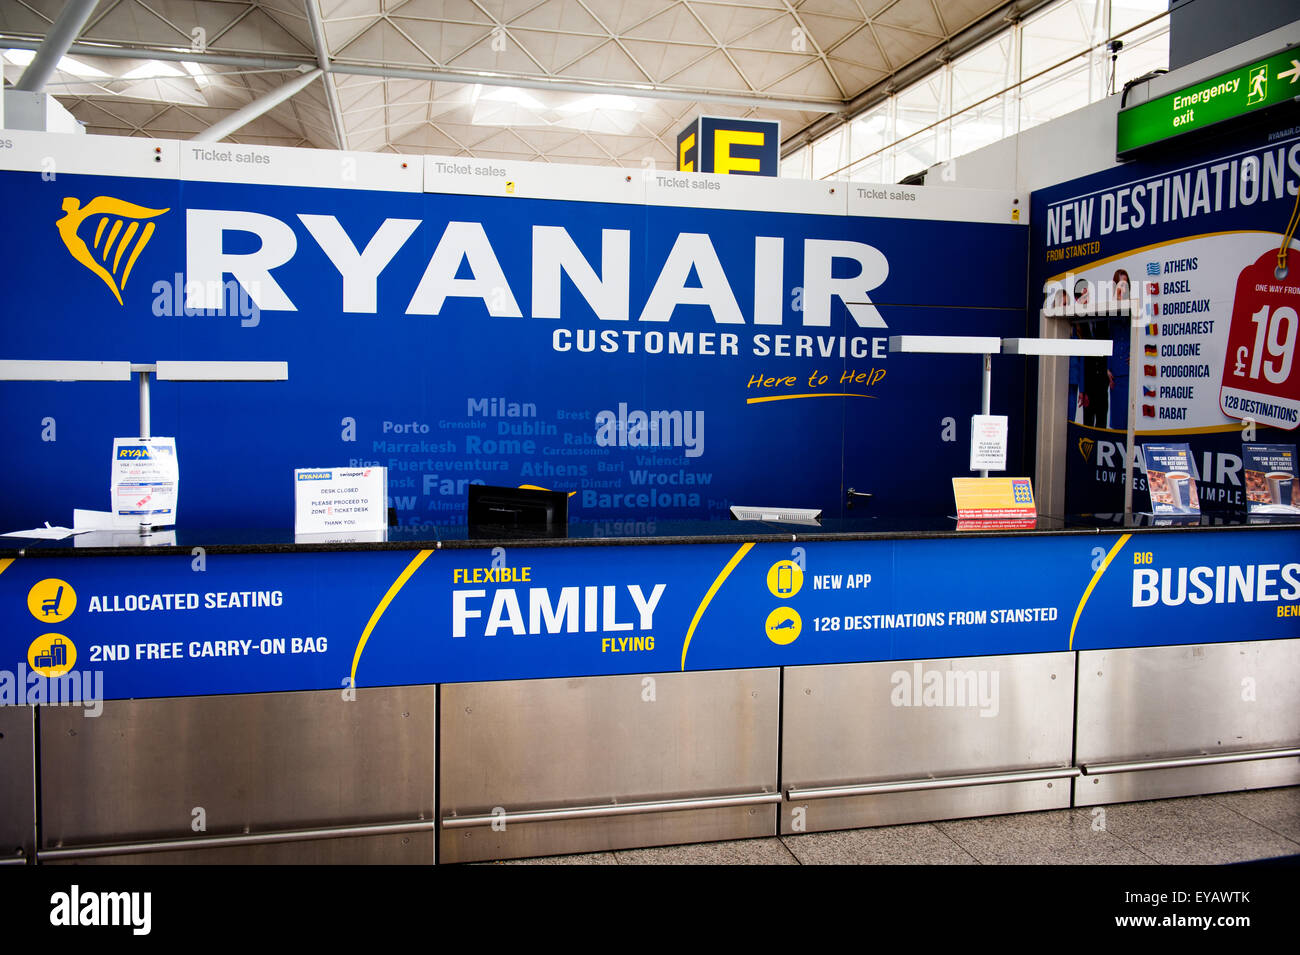 Customer Service Desk Airport Stock Photos amp Customer Service Desk Ryanair Customer Service At Stansted Airport Uk EYAWTK Customer Service Desk Airport